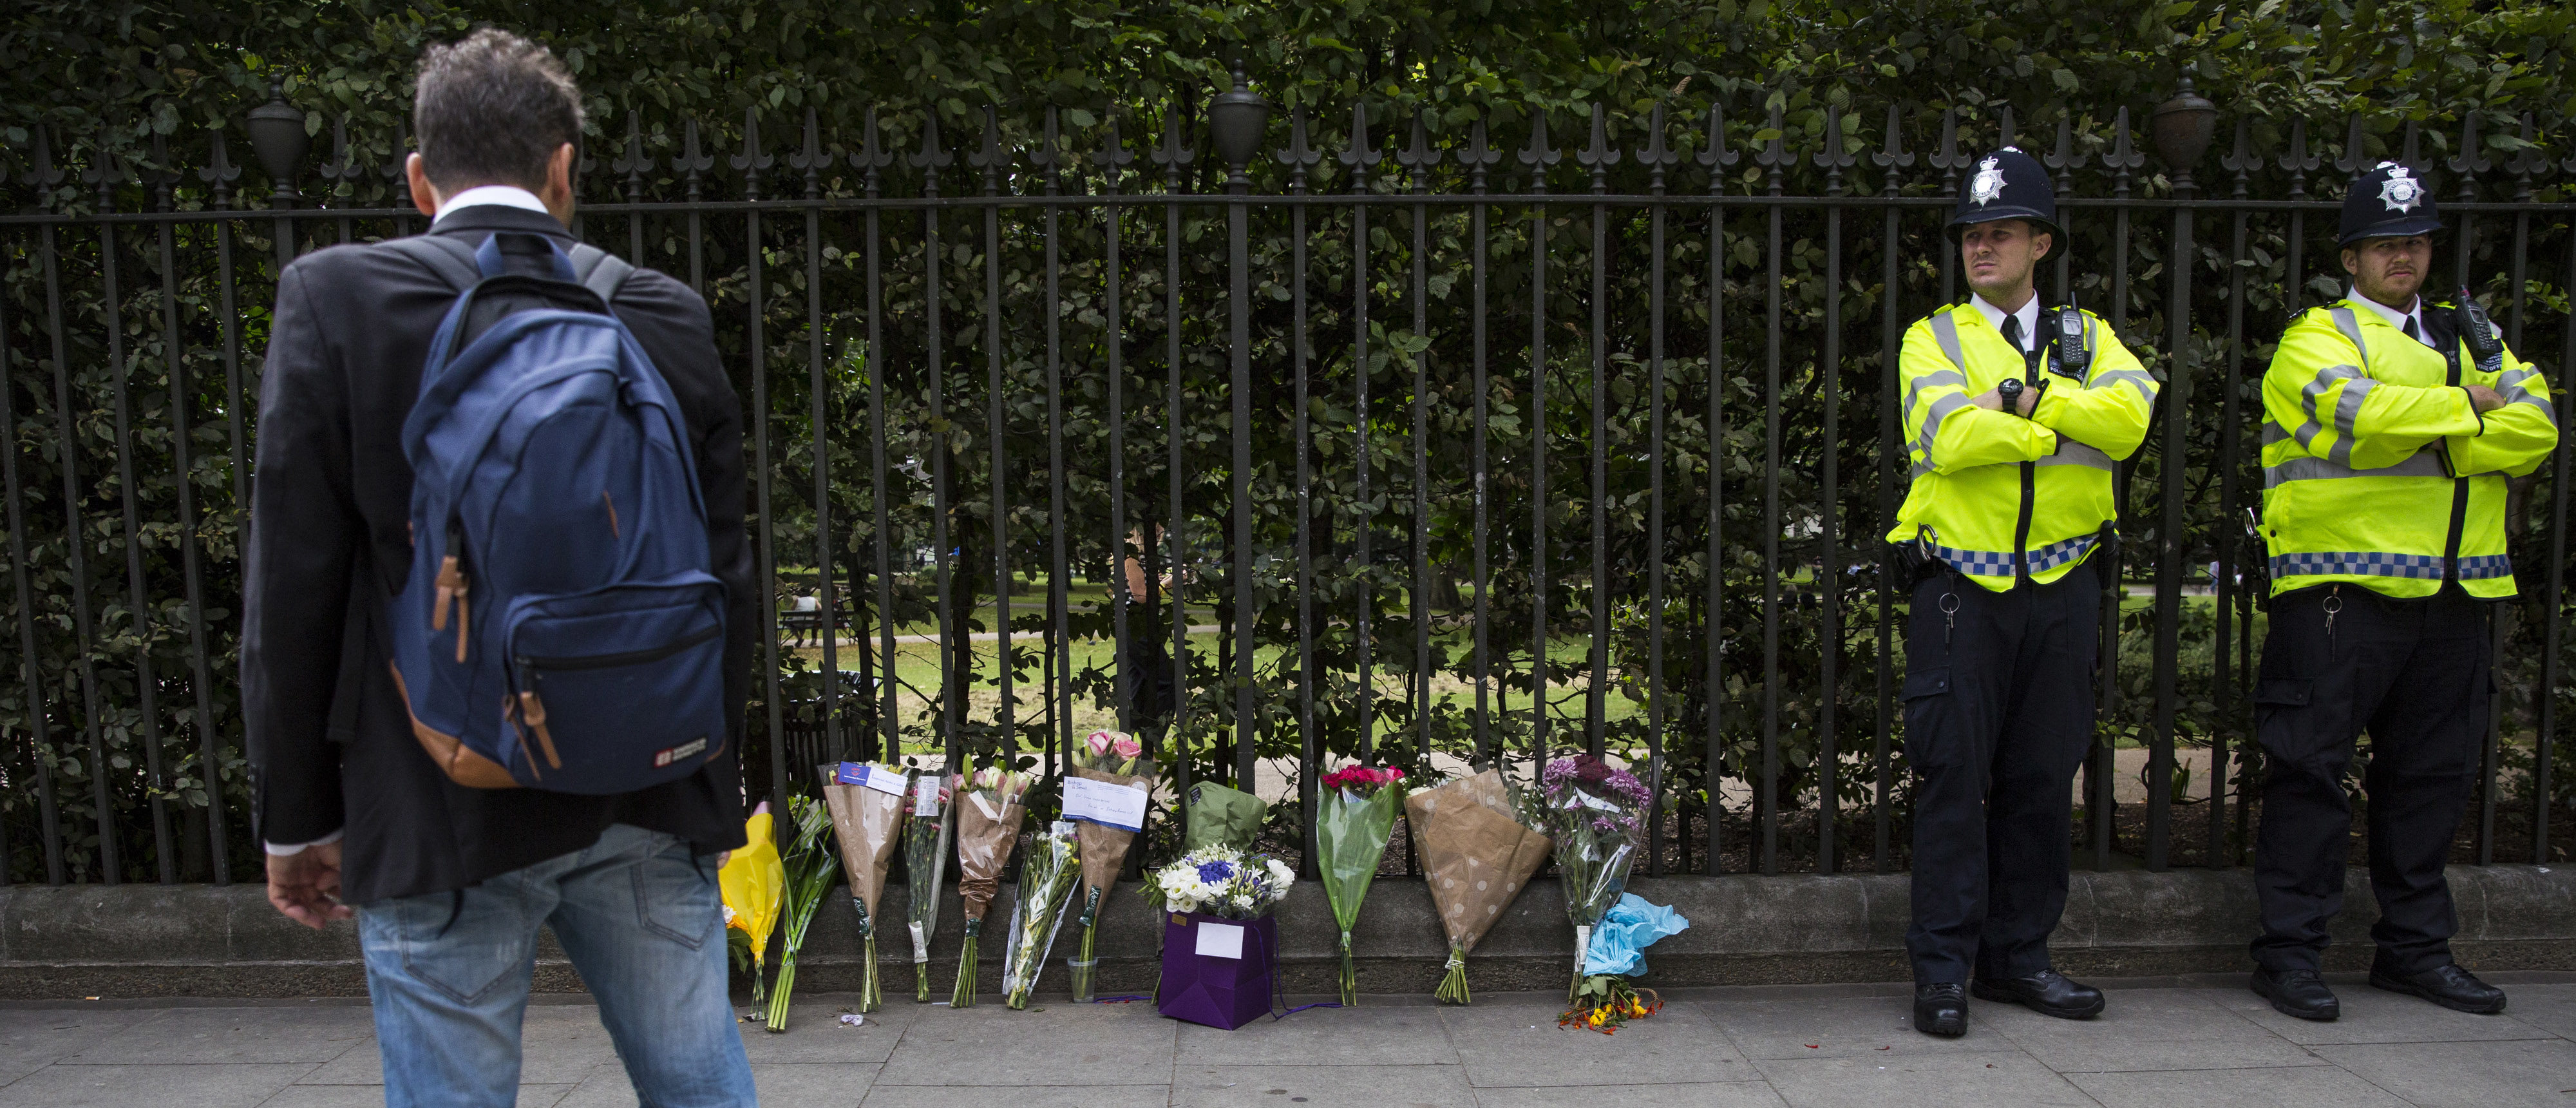 LONDON, ENGLAND - AUGUST 04: Police officers stand guard by flowers left at the scene of a knife attack in Russell Square on August 4, 2016 in London, England. Six people were attacked by a 19 year old man with a knife at 10.30pm in Russell Square, London last night. A woman died of her injuries. The suspect was arrested at the scene and is being held at a London Hospital. Police say mental health issues are a significant factor. (Photo by Jack Taylor/Getty Images)